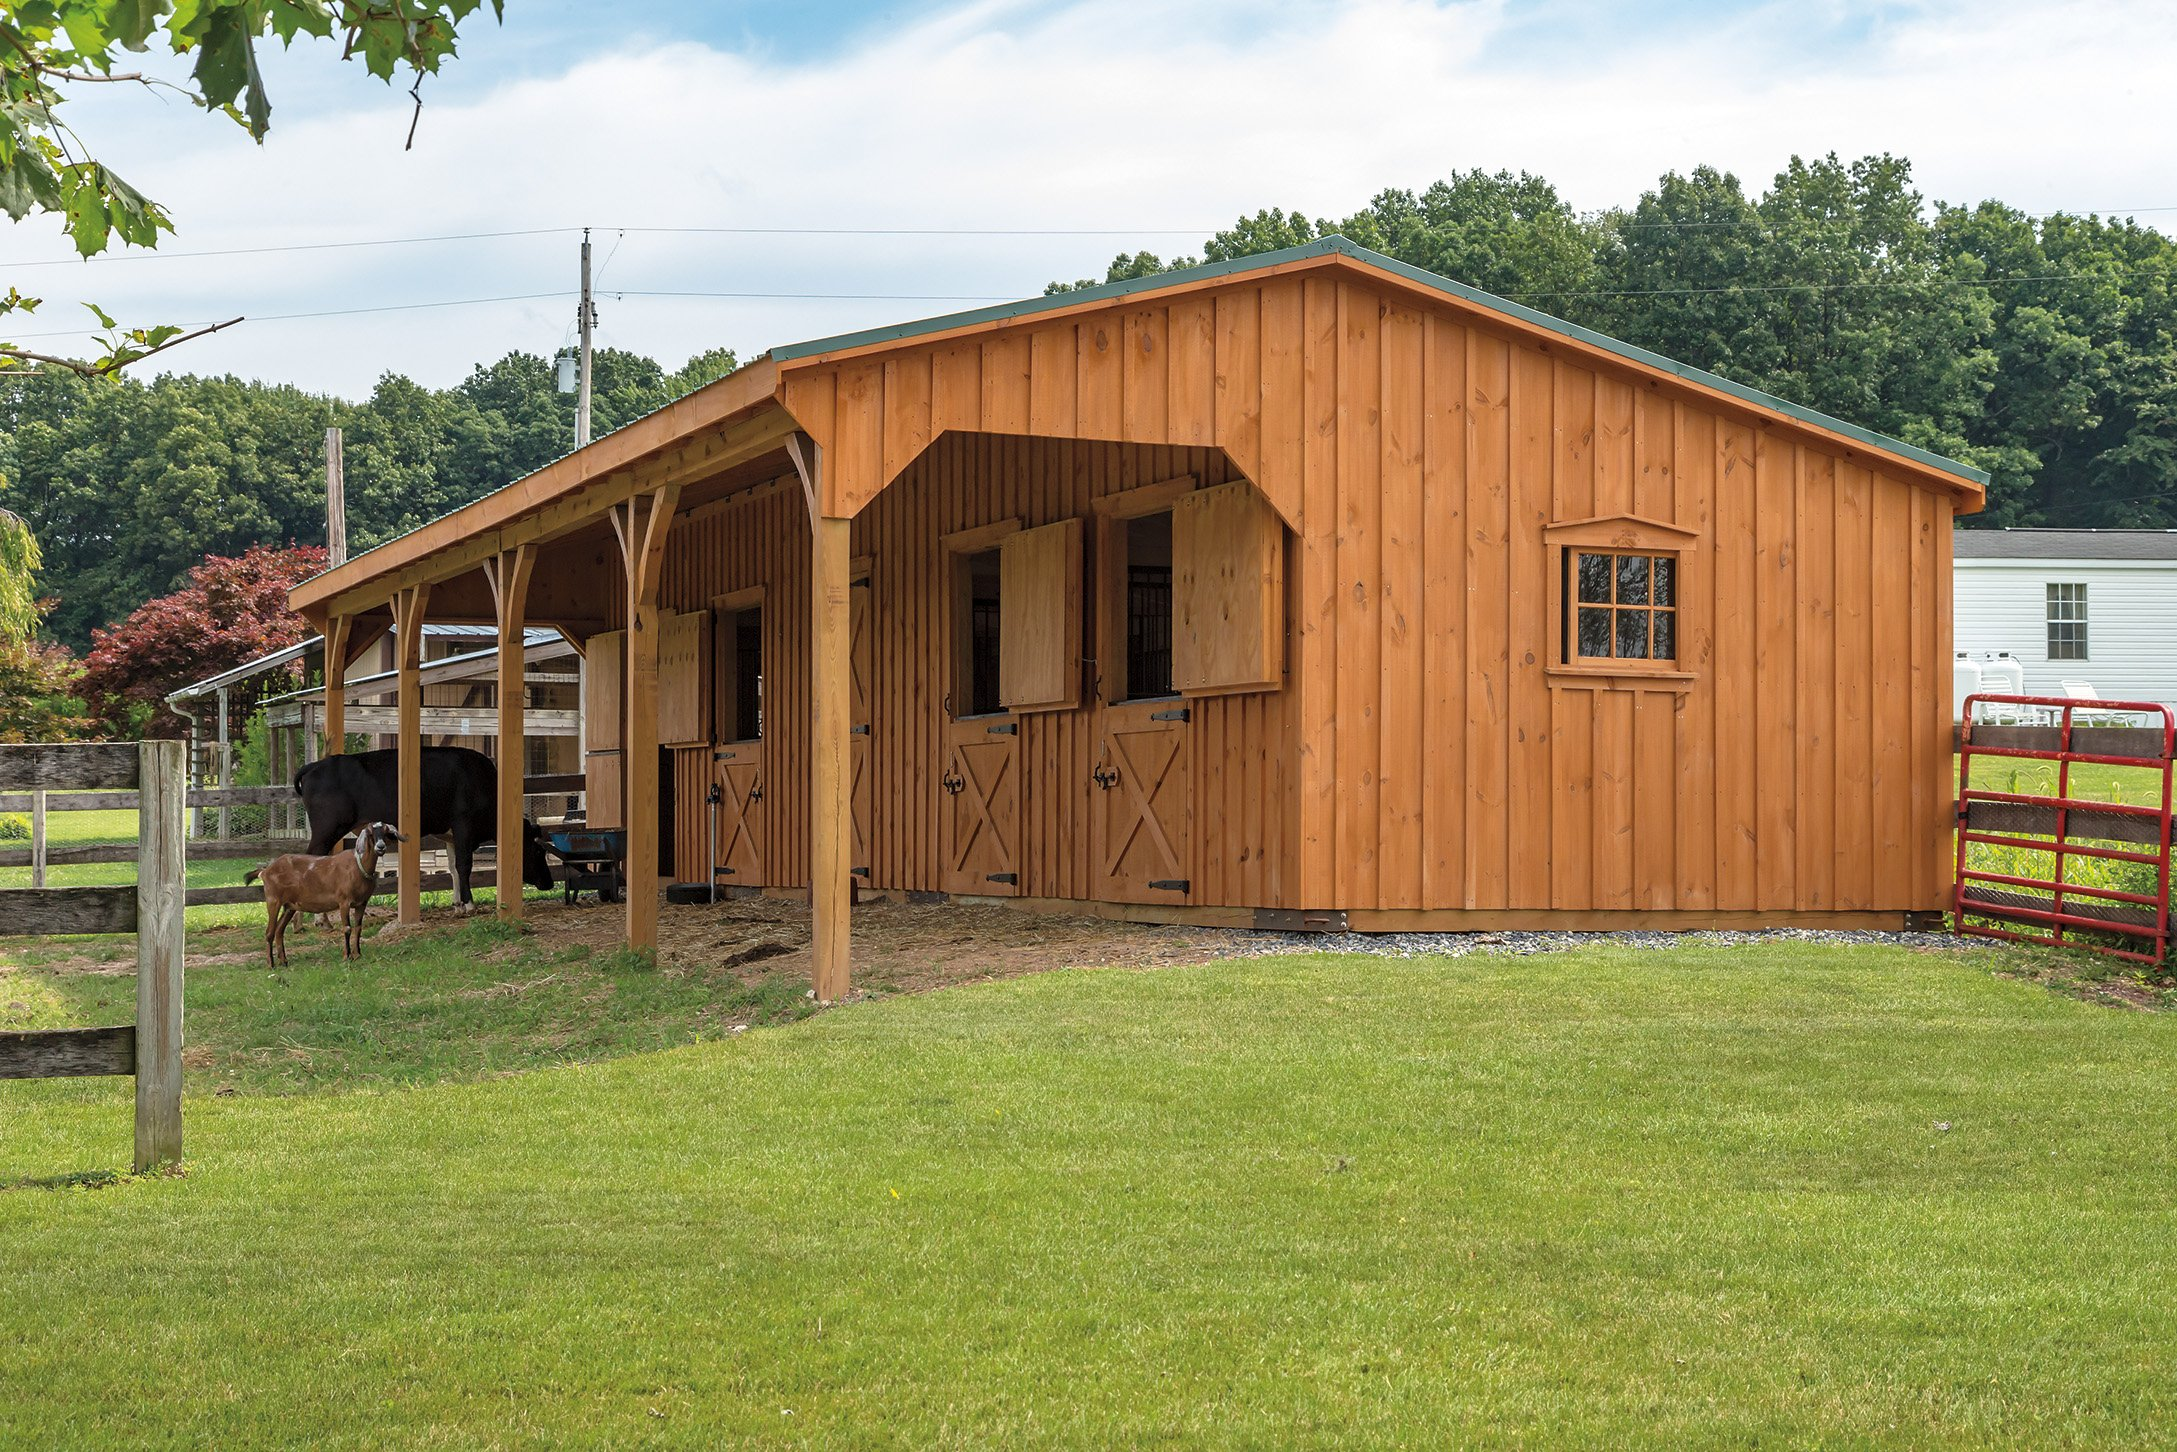 garages amish painted porch smartside sheds barns camps horse storage mini pt hill view